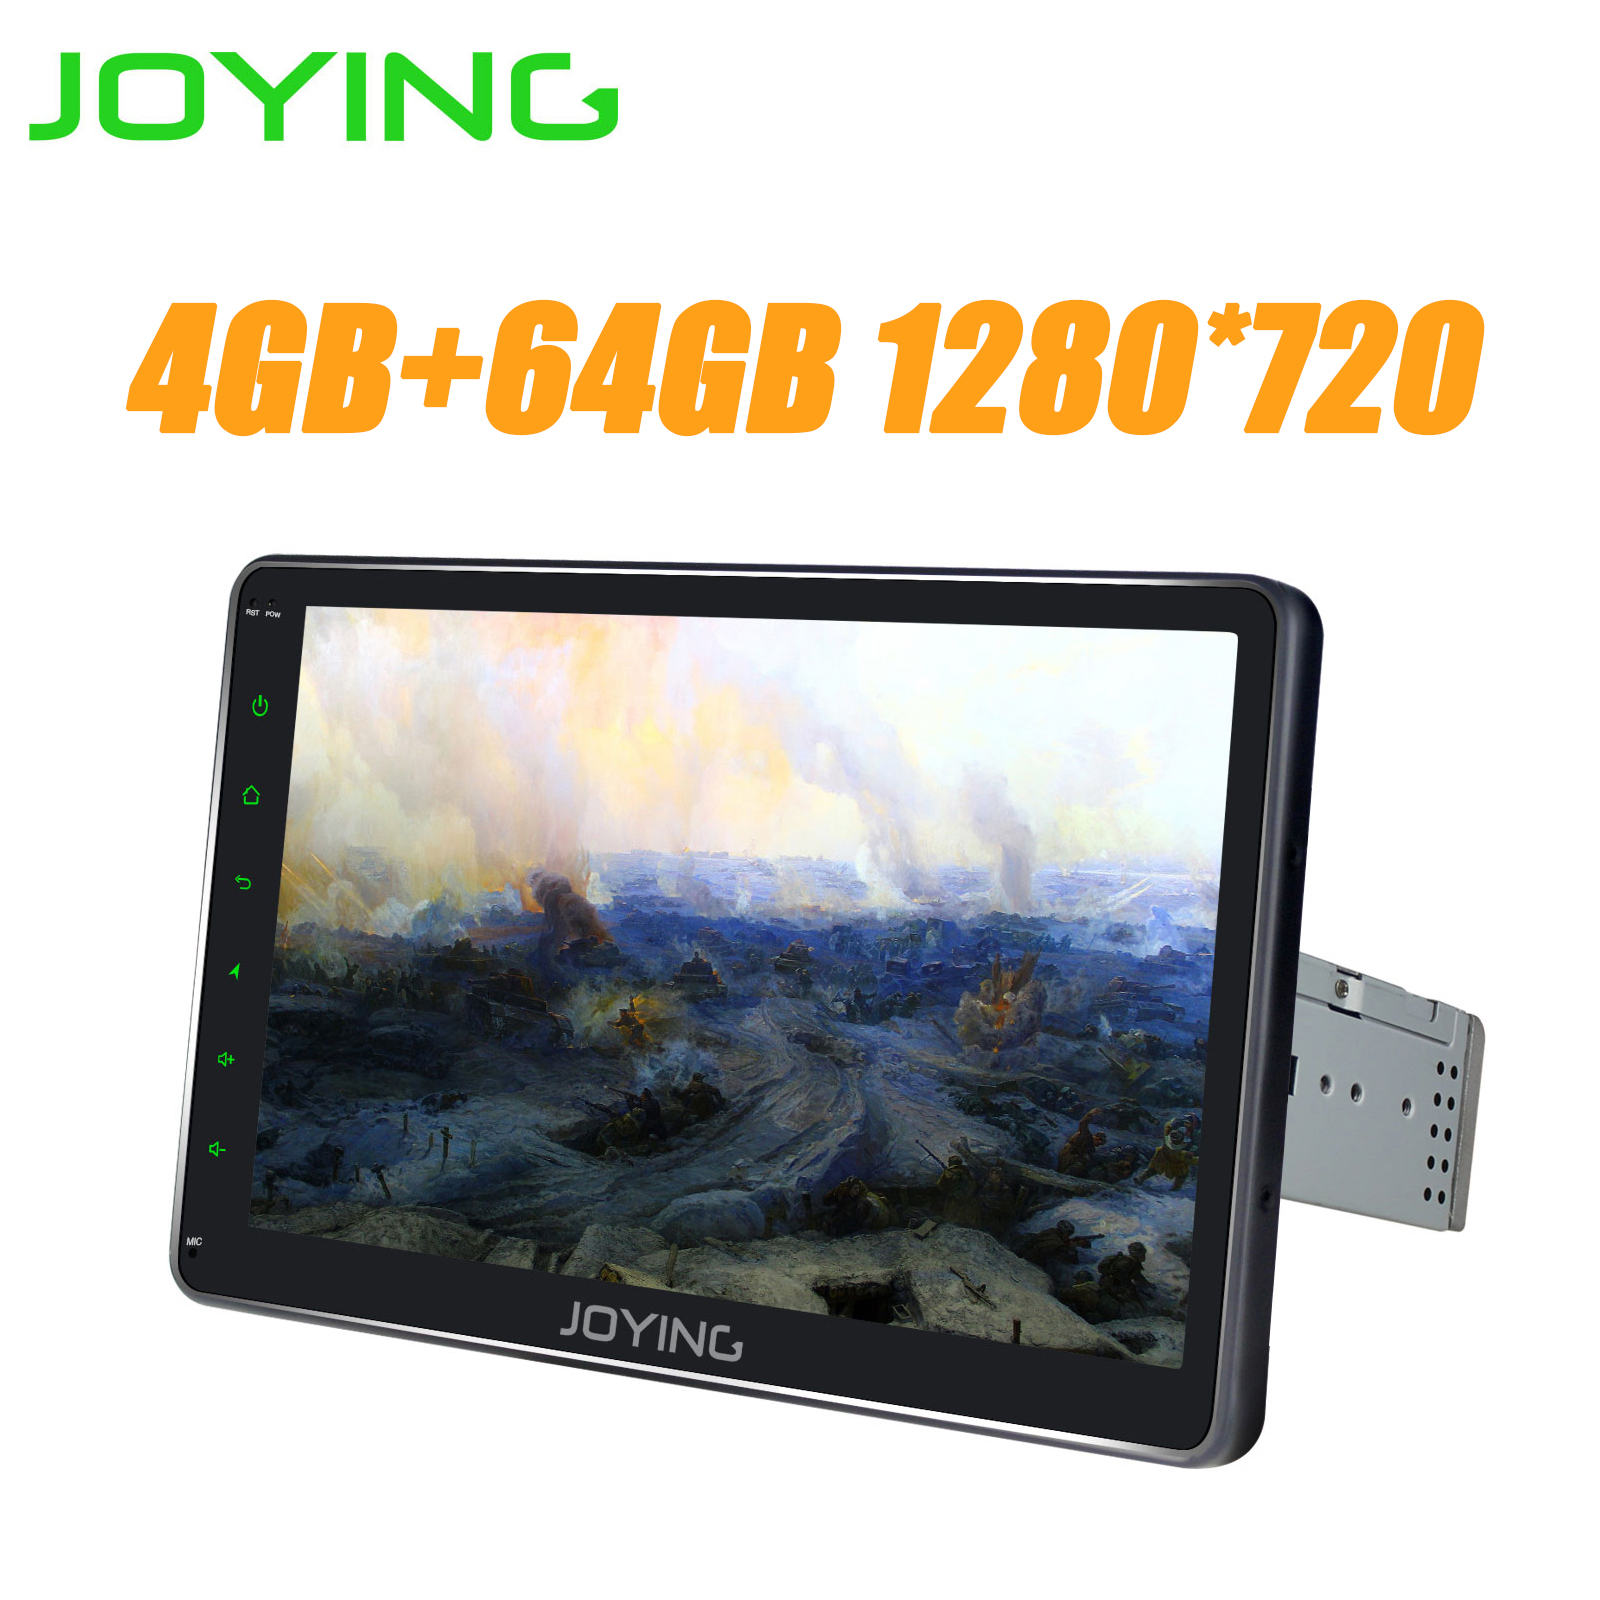 4G+64G ROM 10.1 Octa Core Android 8.1 Car Multimedia Player with built in 4G Modem 1280*720 Car Radio GPS Carplay DVR Fast Boot